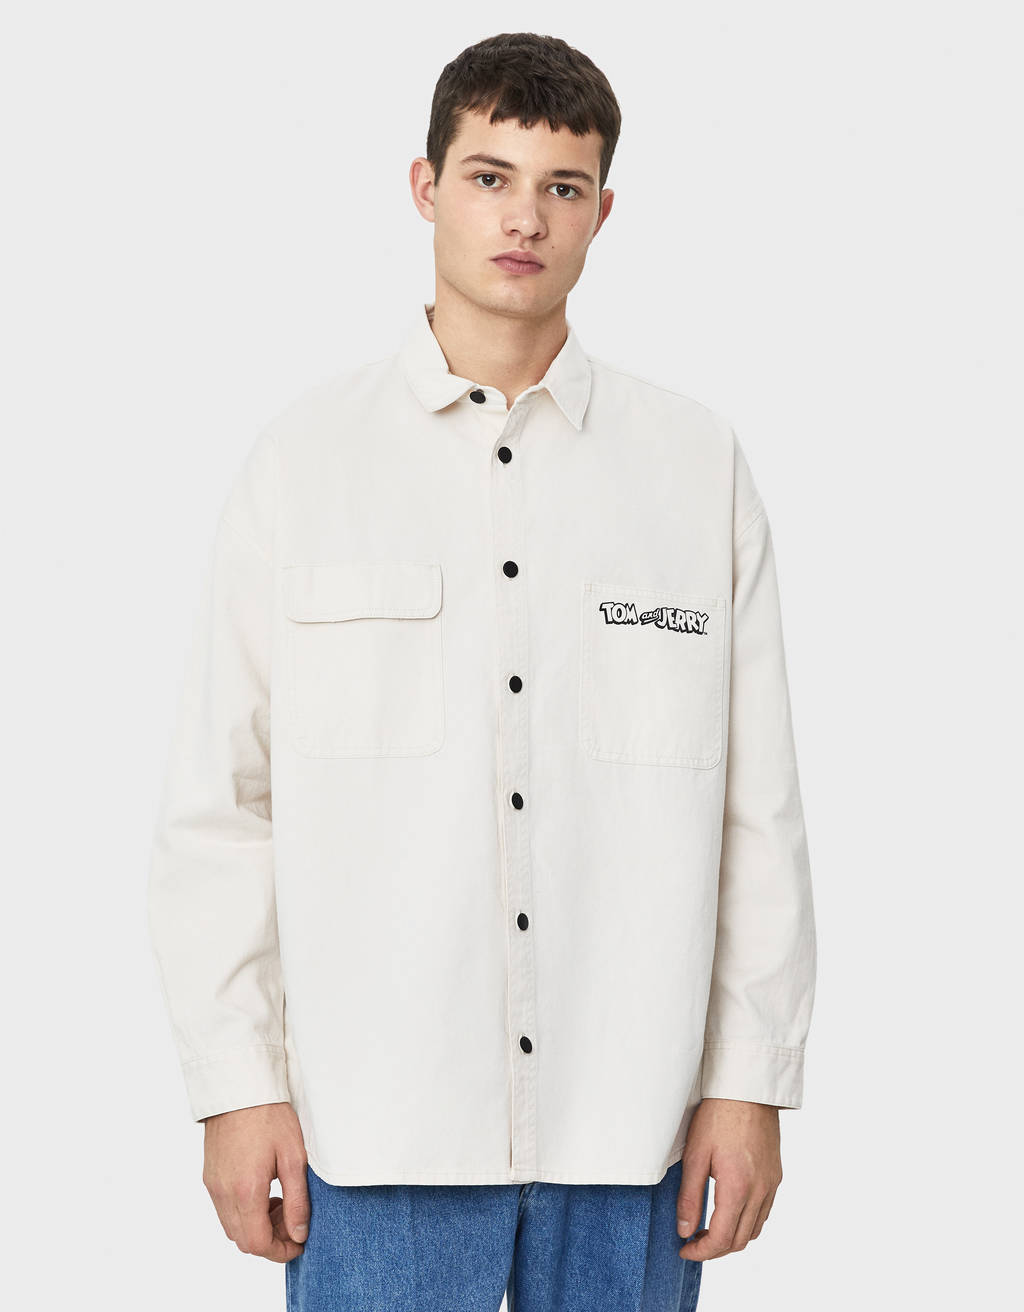 Tom & Jerry overshirt